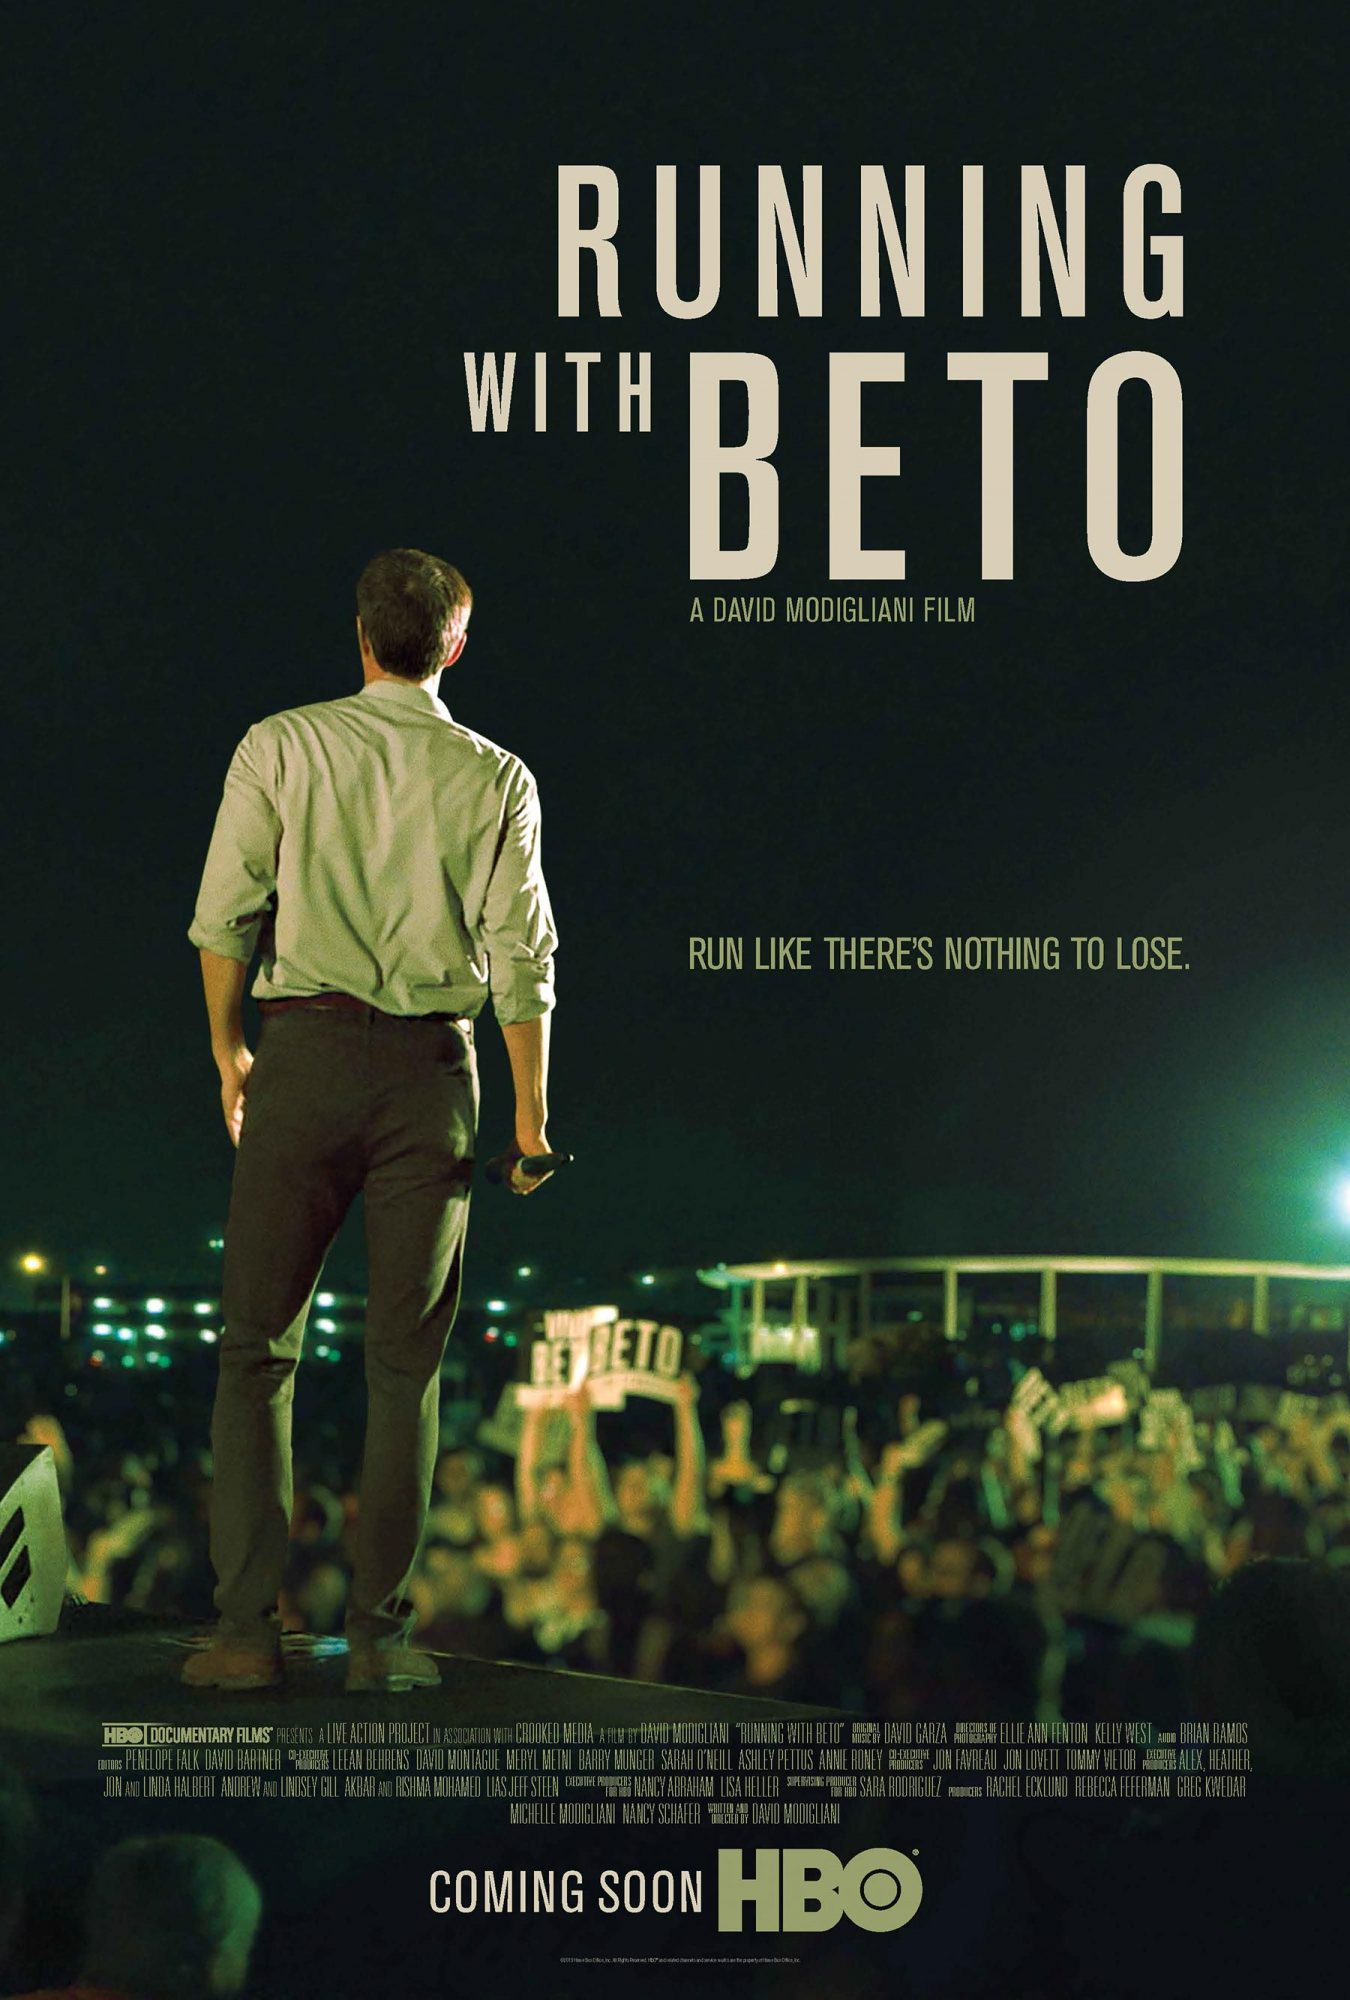 Running With Beto posterCourtesy of HBO